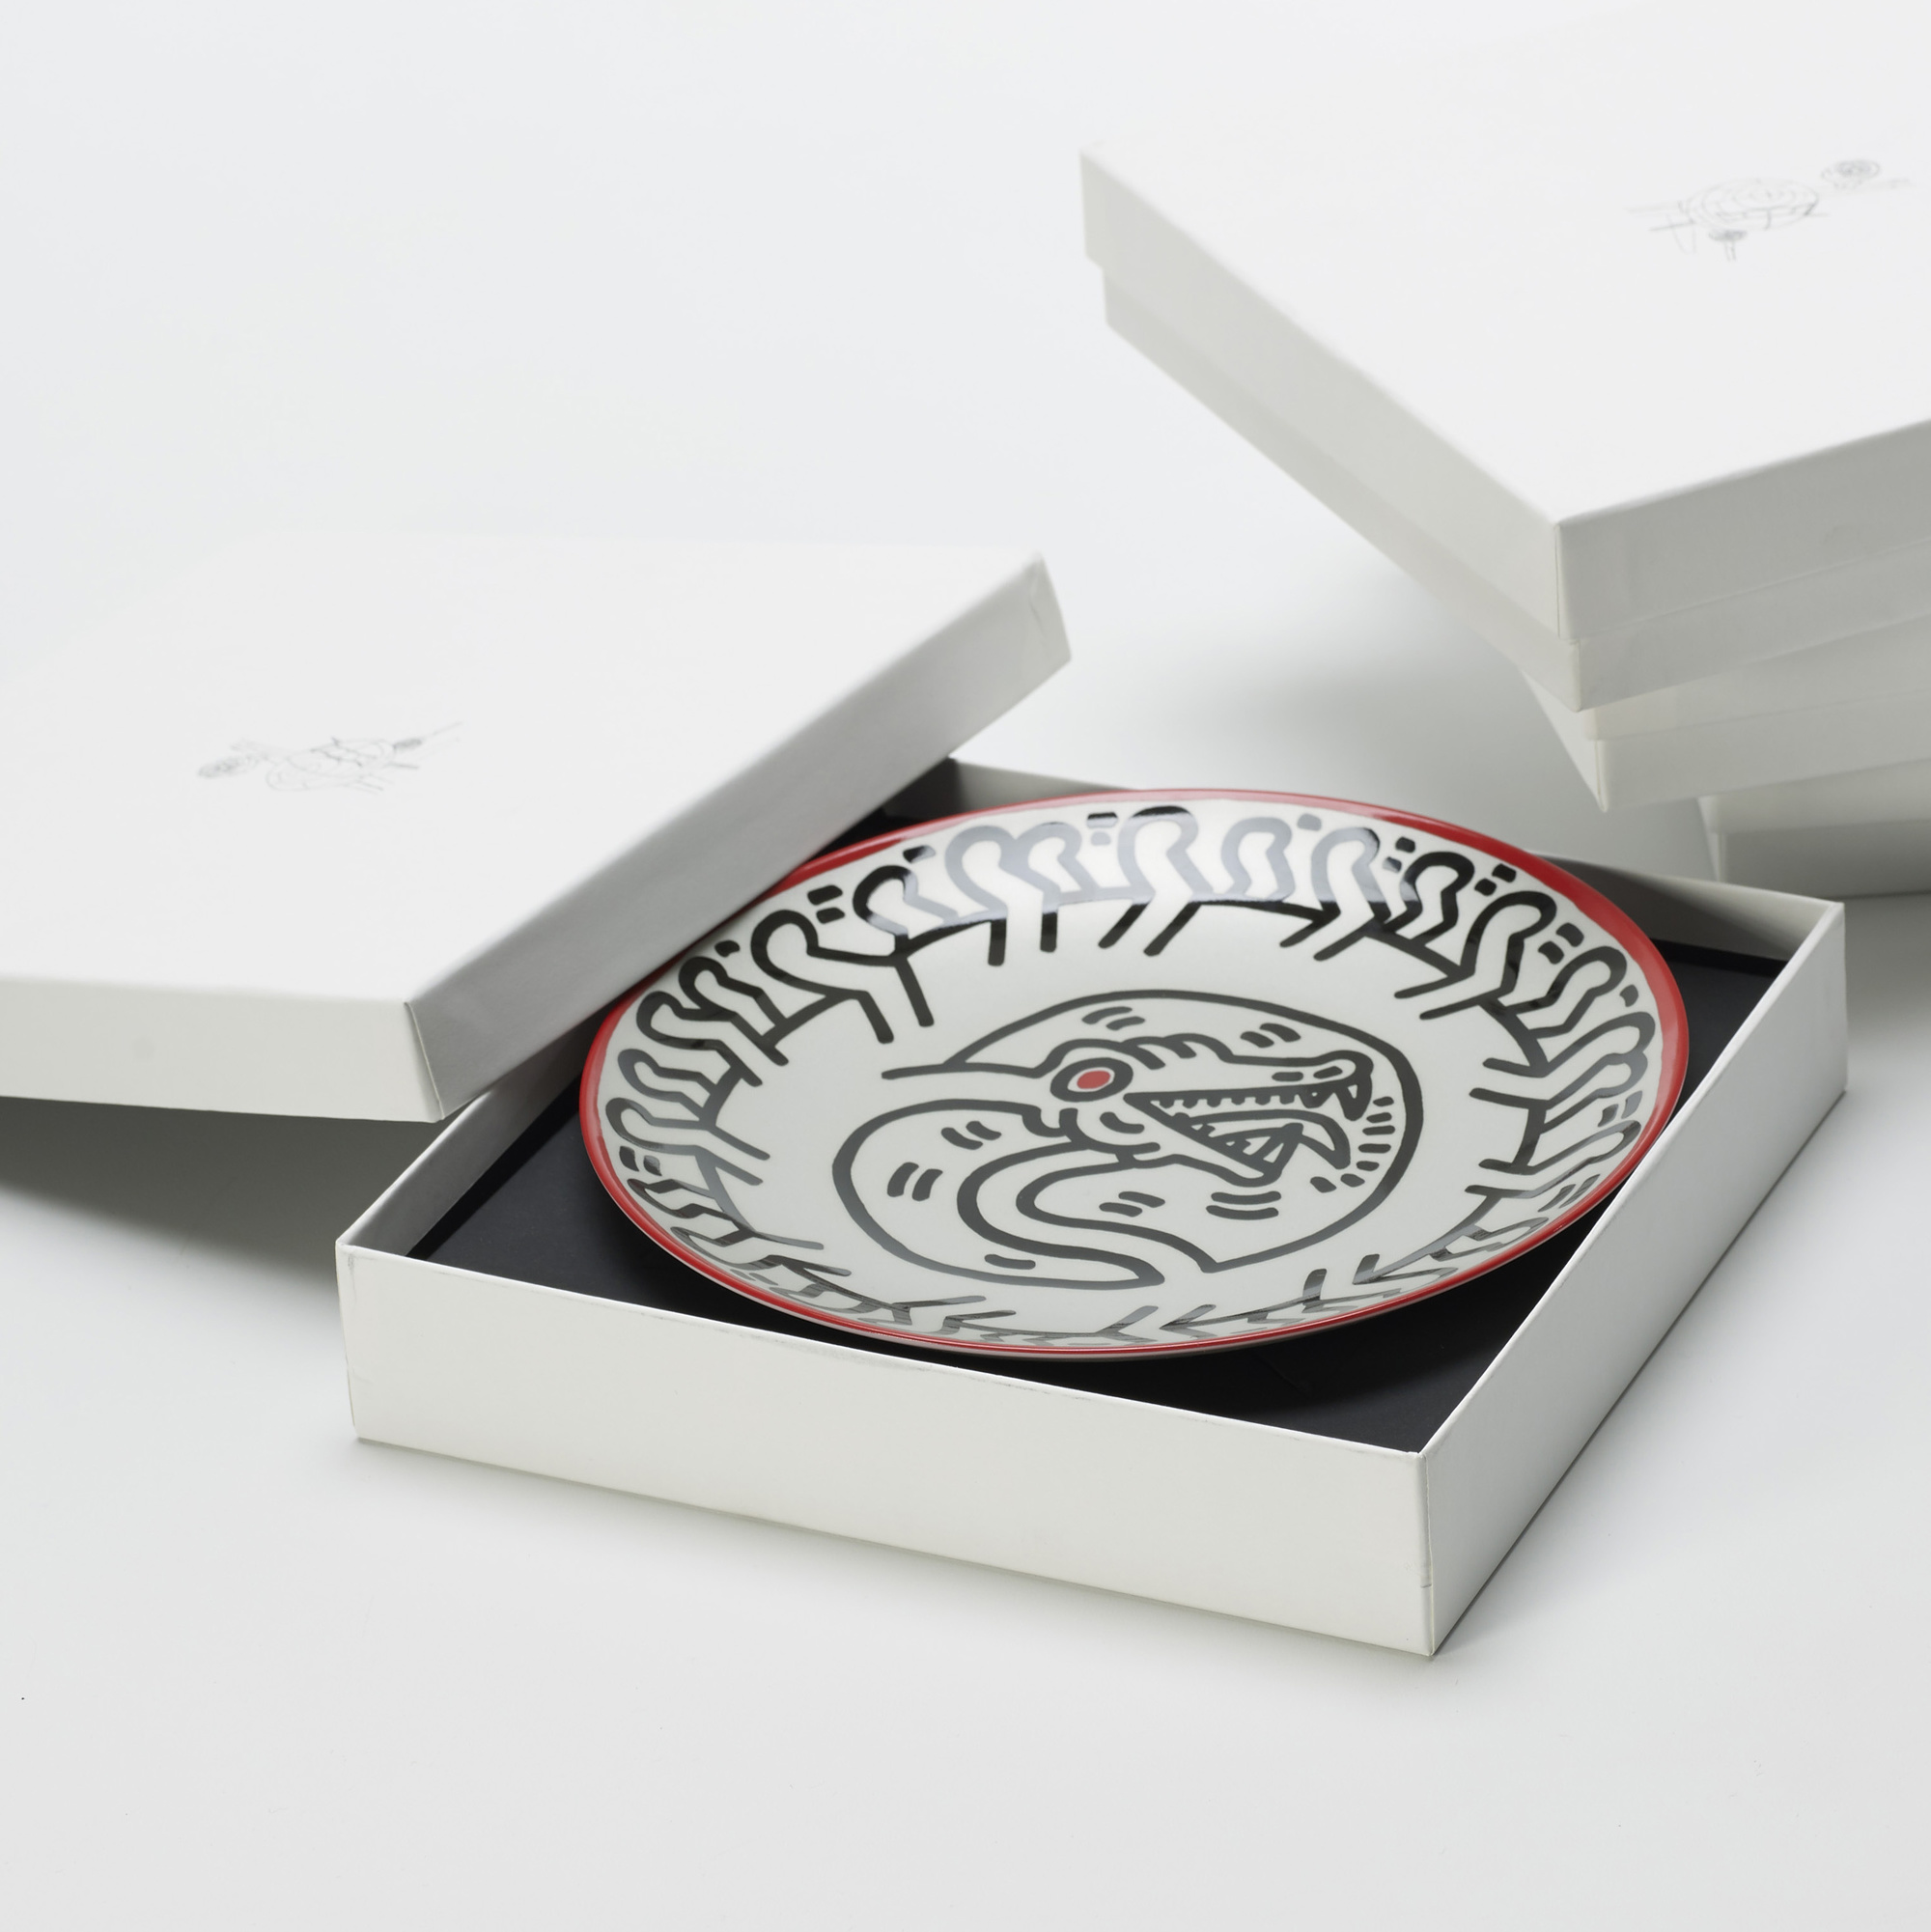 317: Keith Haring / plates, set of four (2 of 3)